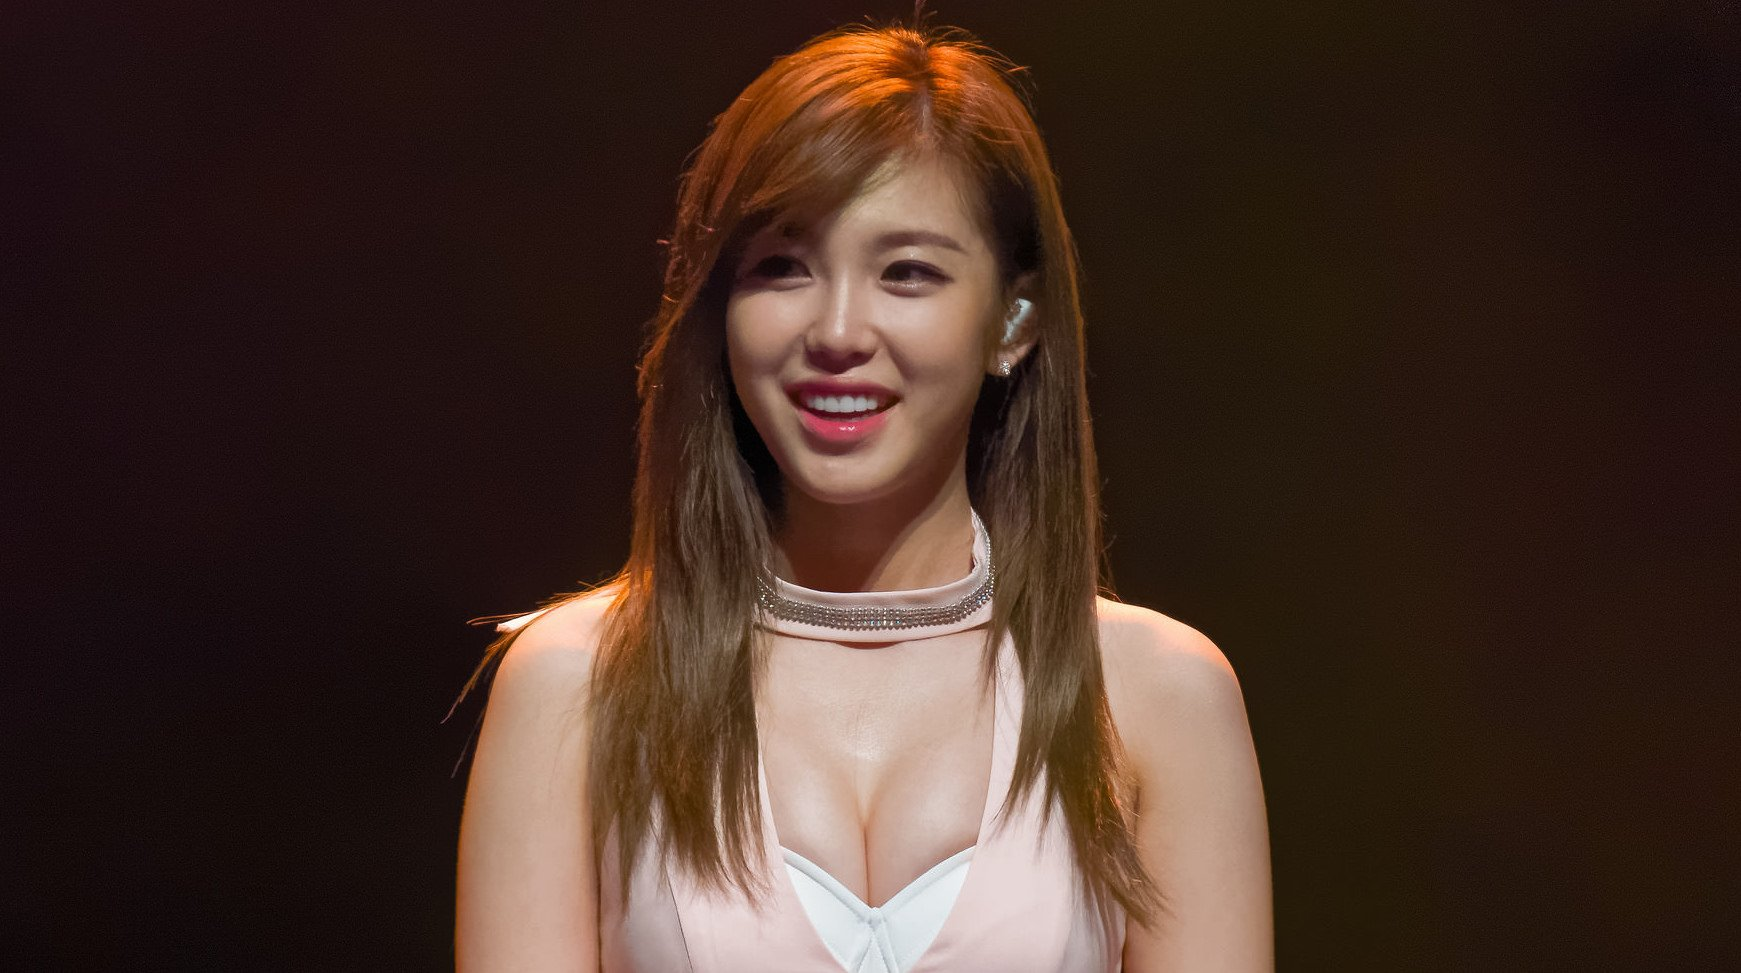 Hyosung Offers Encouragement And Advice To A Fan Who Felt Insecure About Her Chest